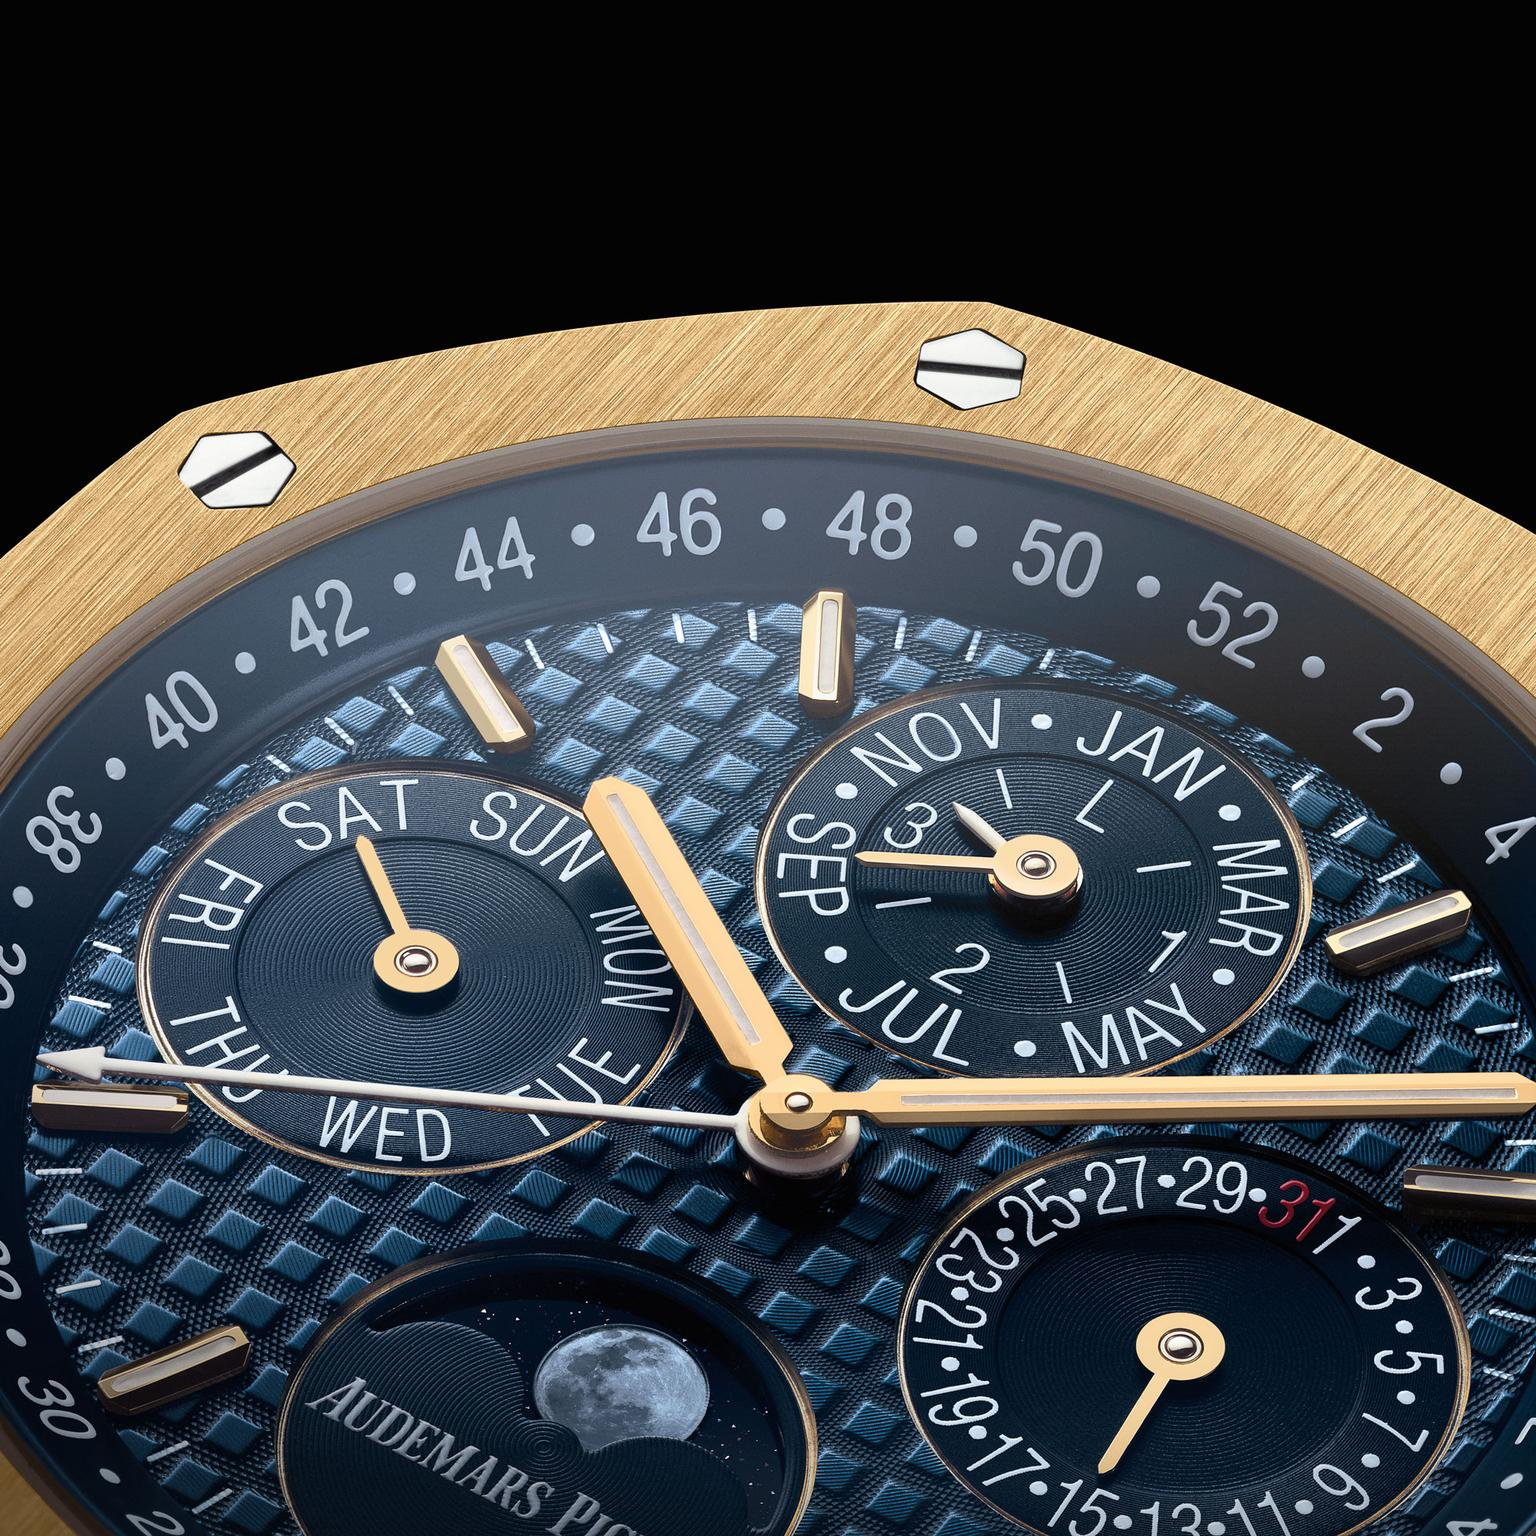 Audemars Piguet Royal Oak Perpetual Calendar watch